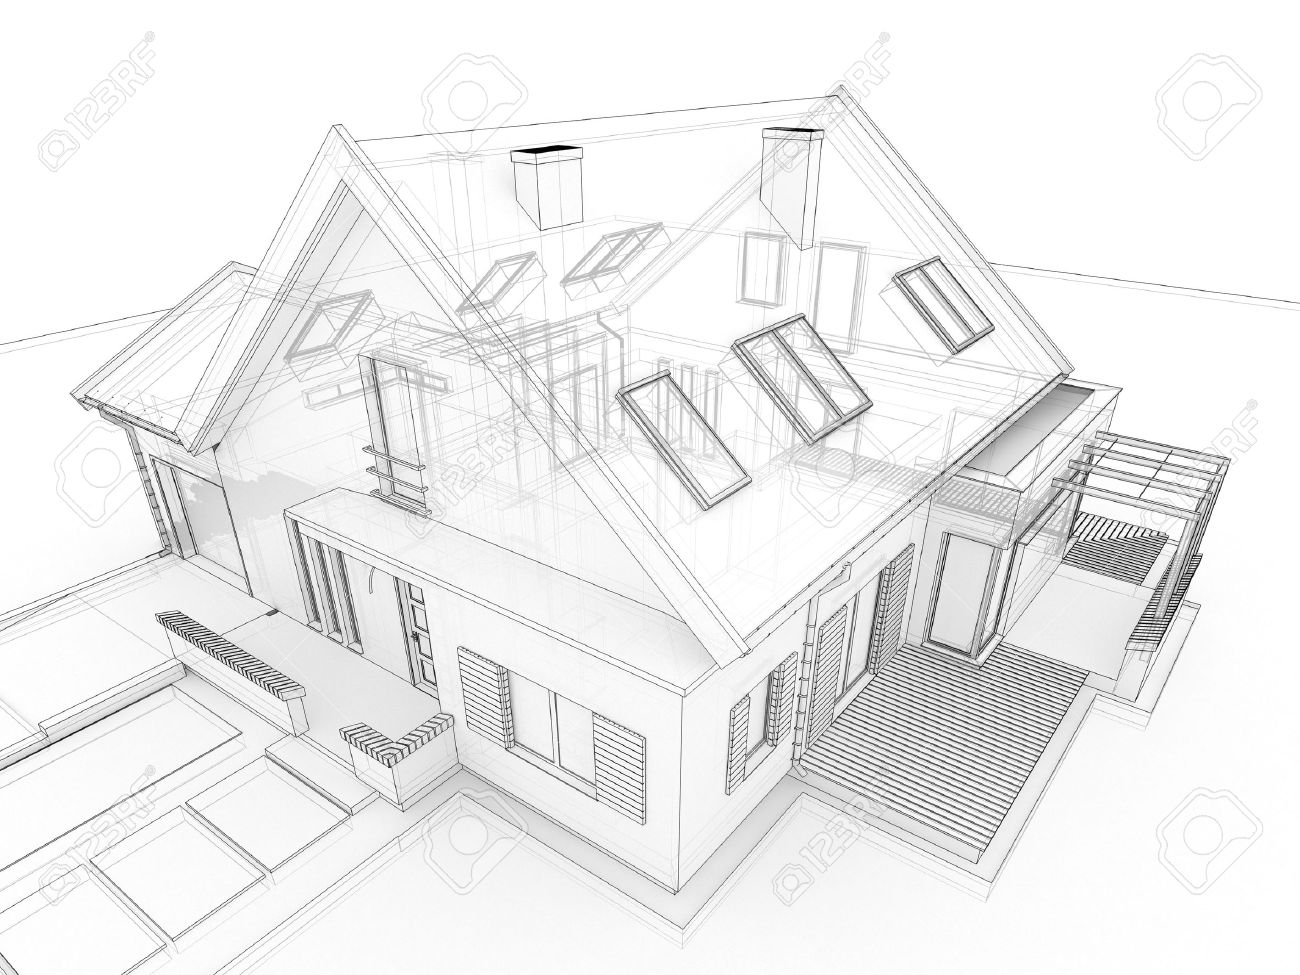 How to draw a house plan on a computer